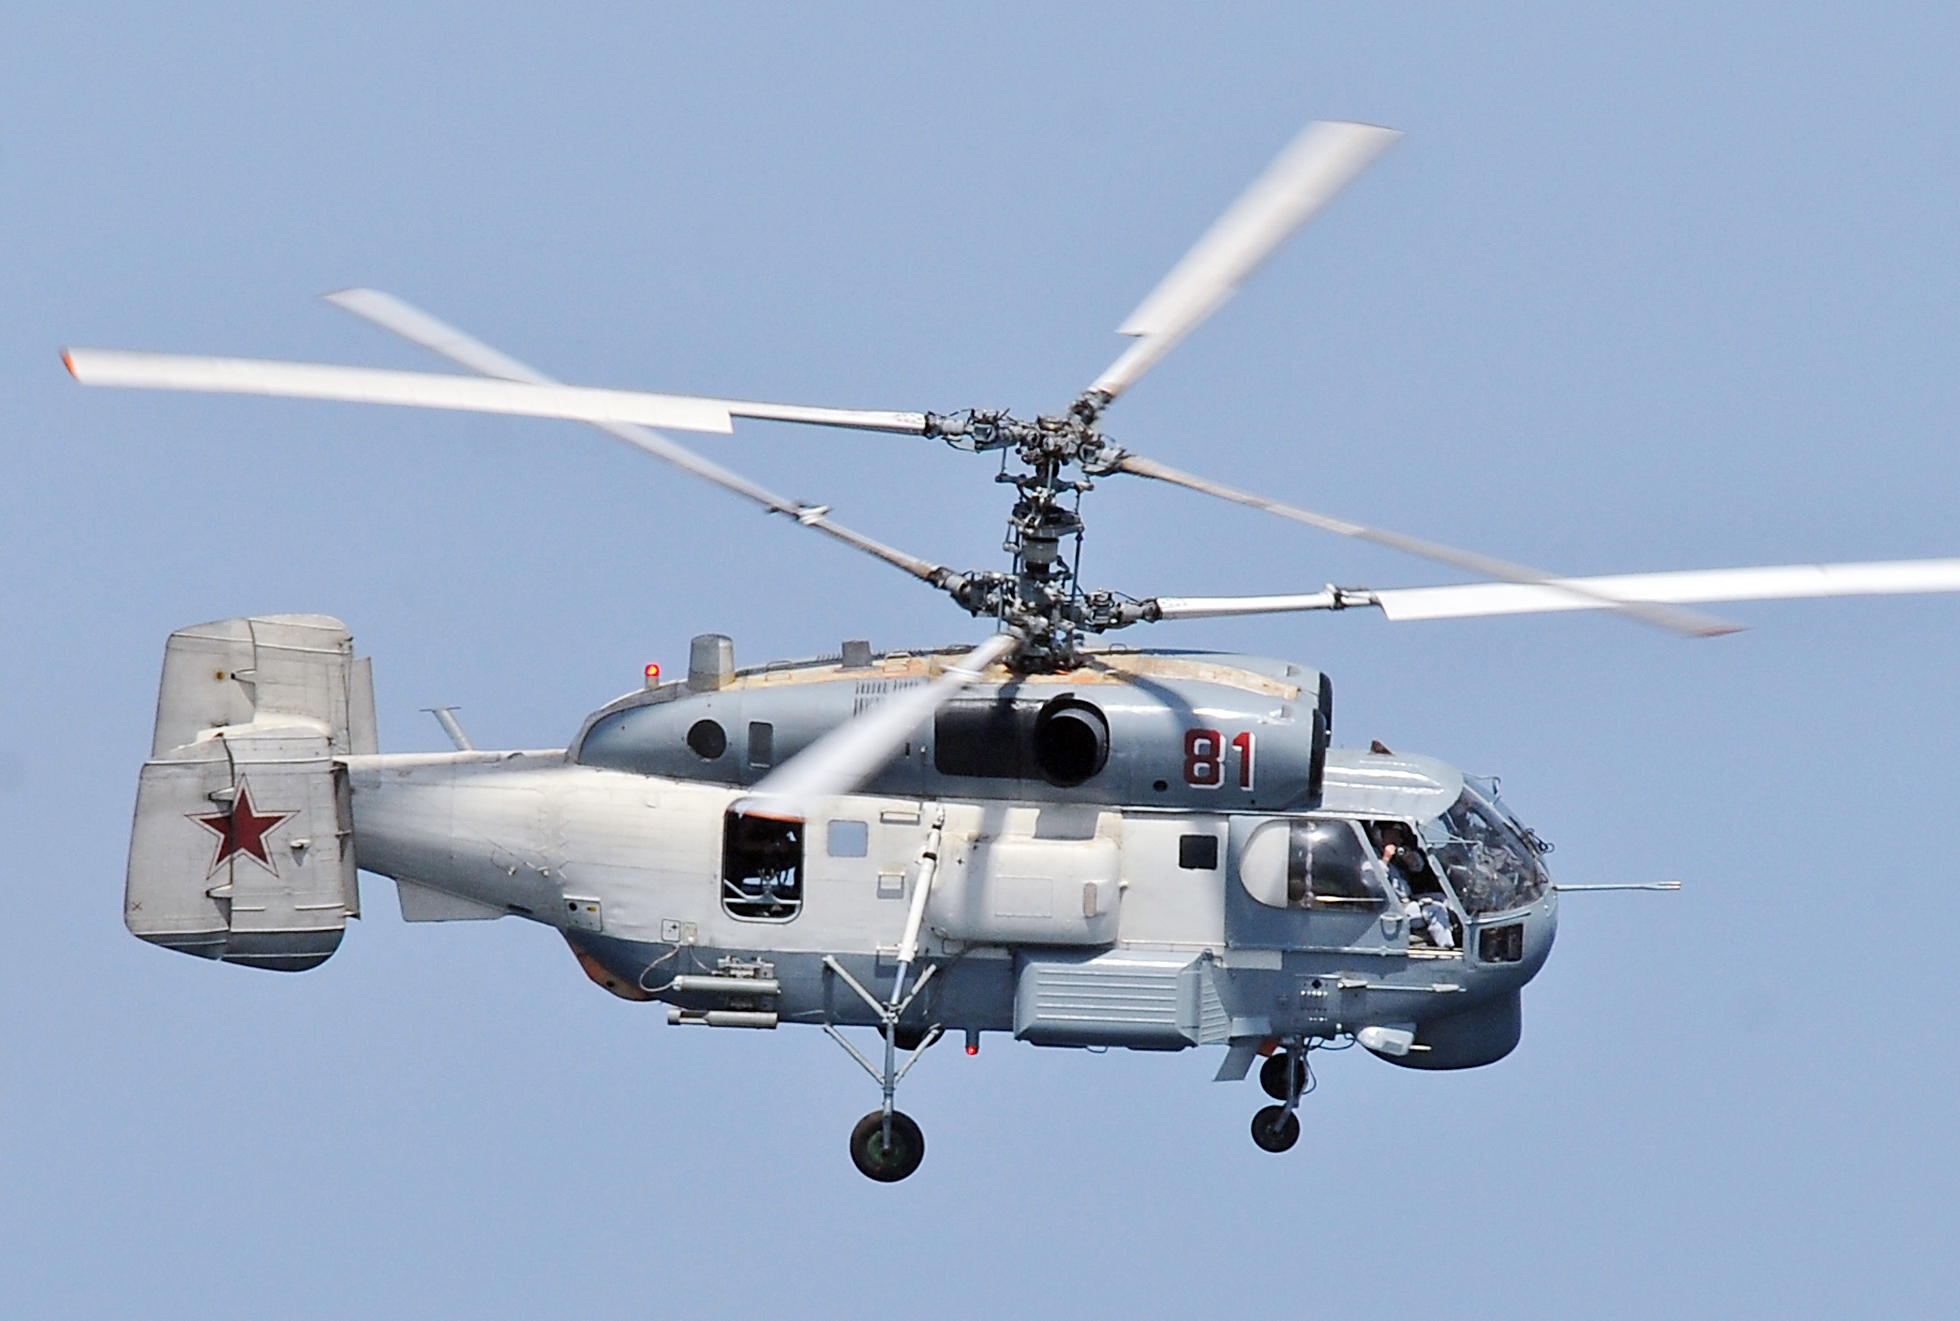 2015 Russia 9 Ka-32A11BC MEDIUM MULTI-ROLE HELICOPTER